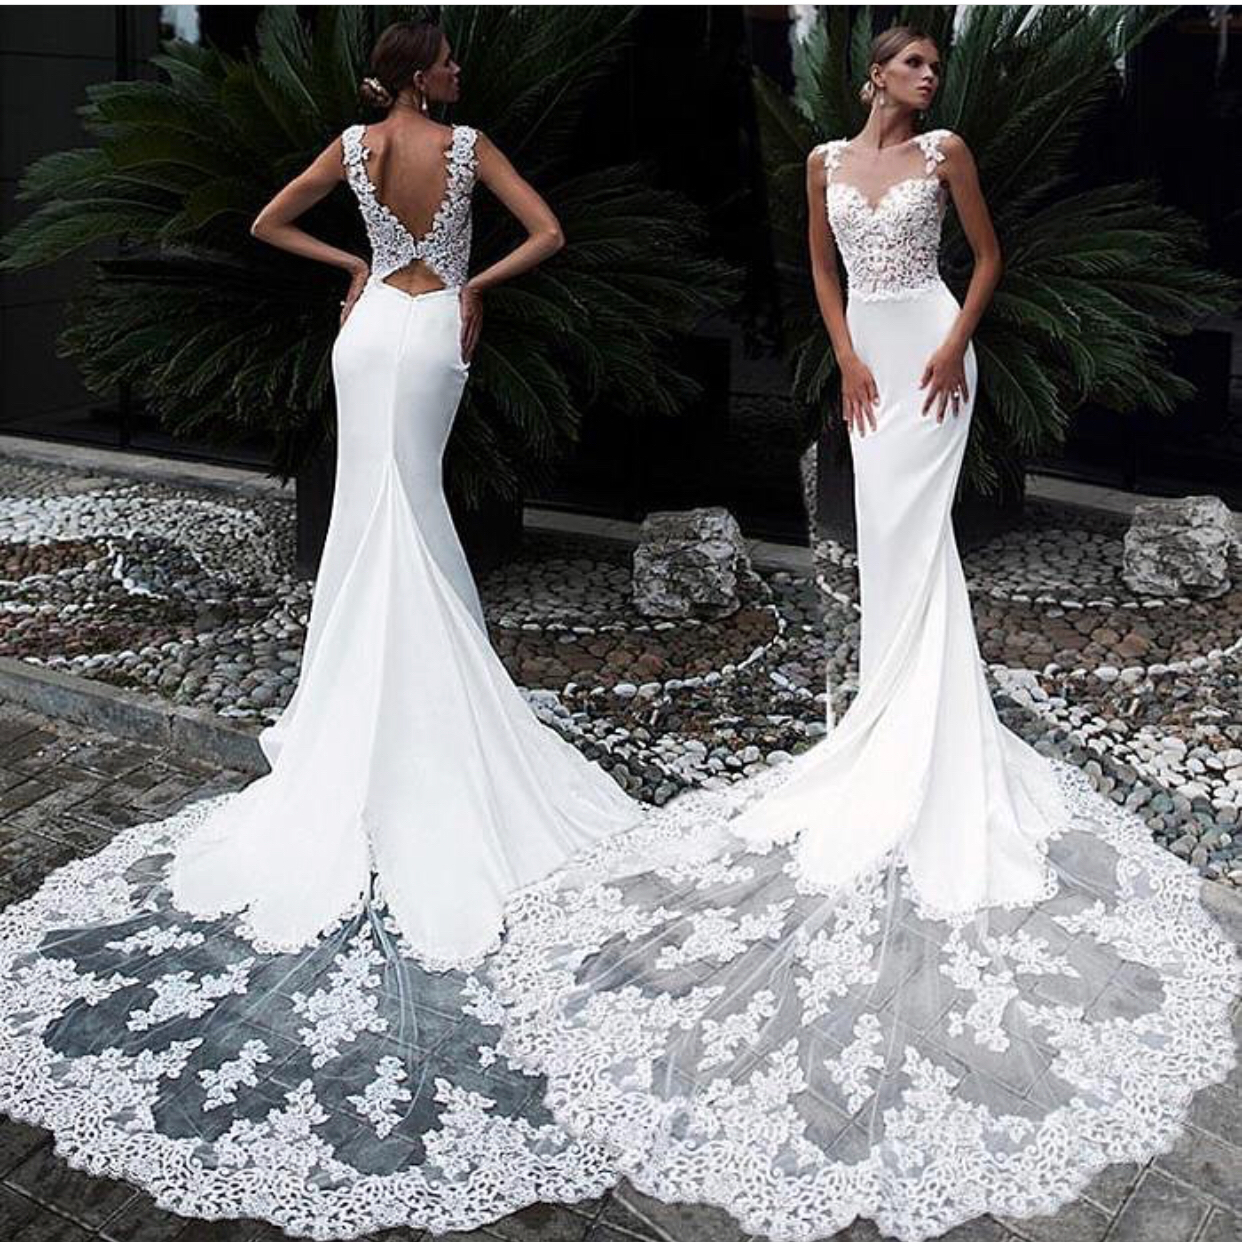 Wedding Dresess: Mermaid Wedding Dress, Lace Applique Wedding Dress, Sexy